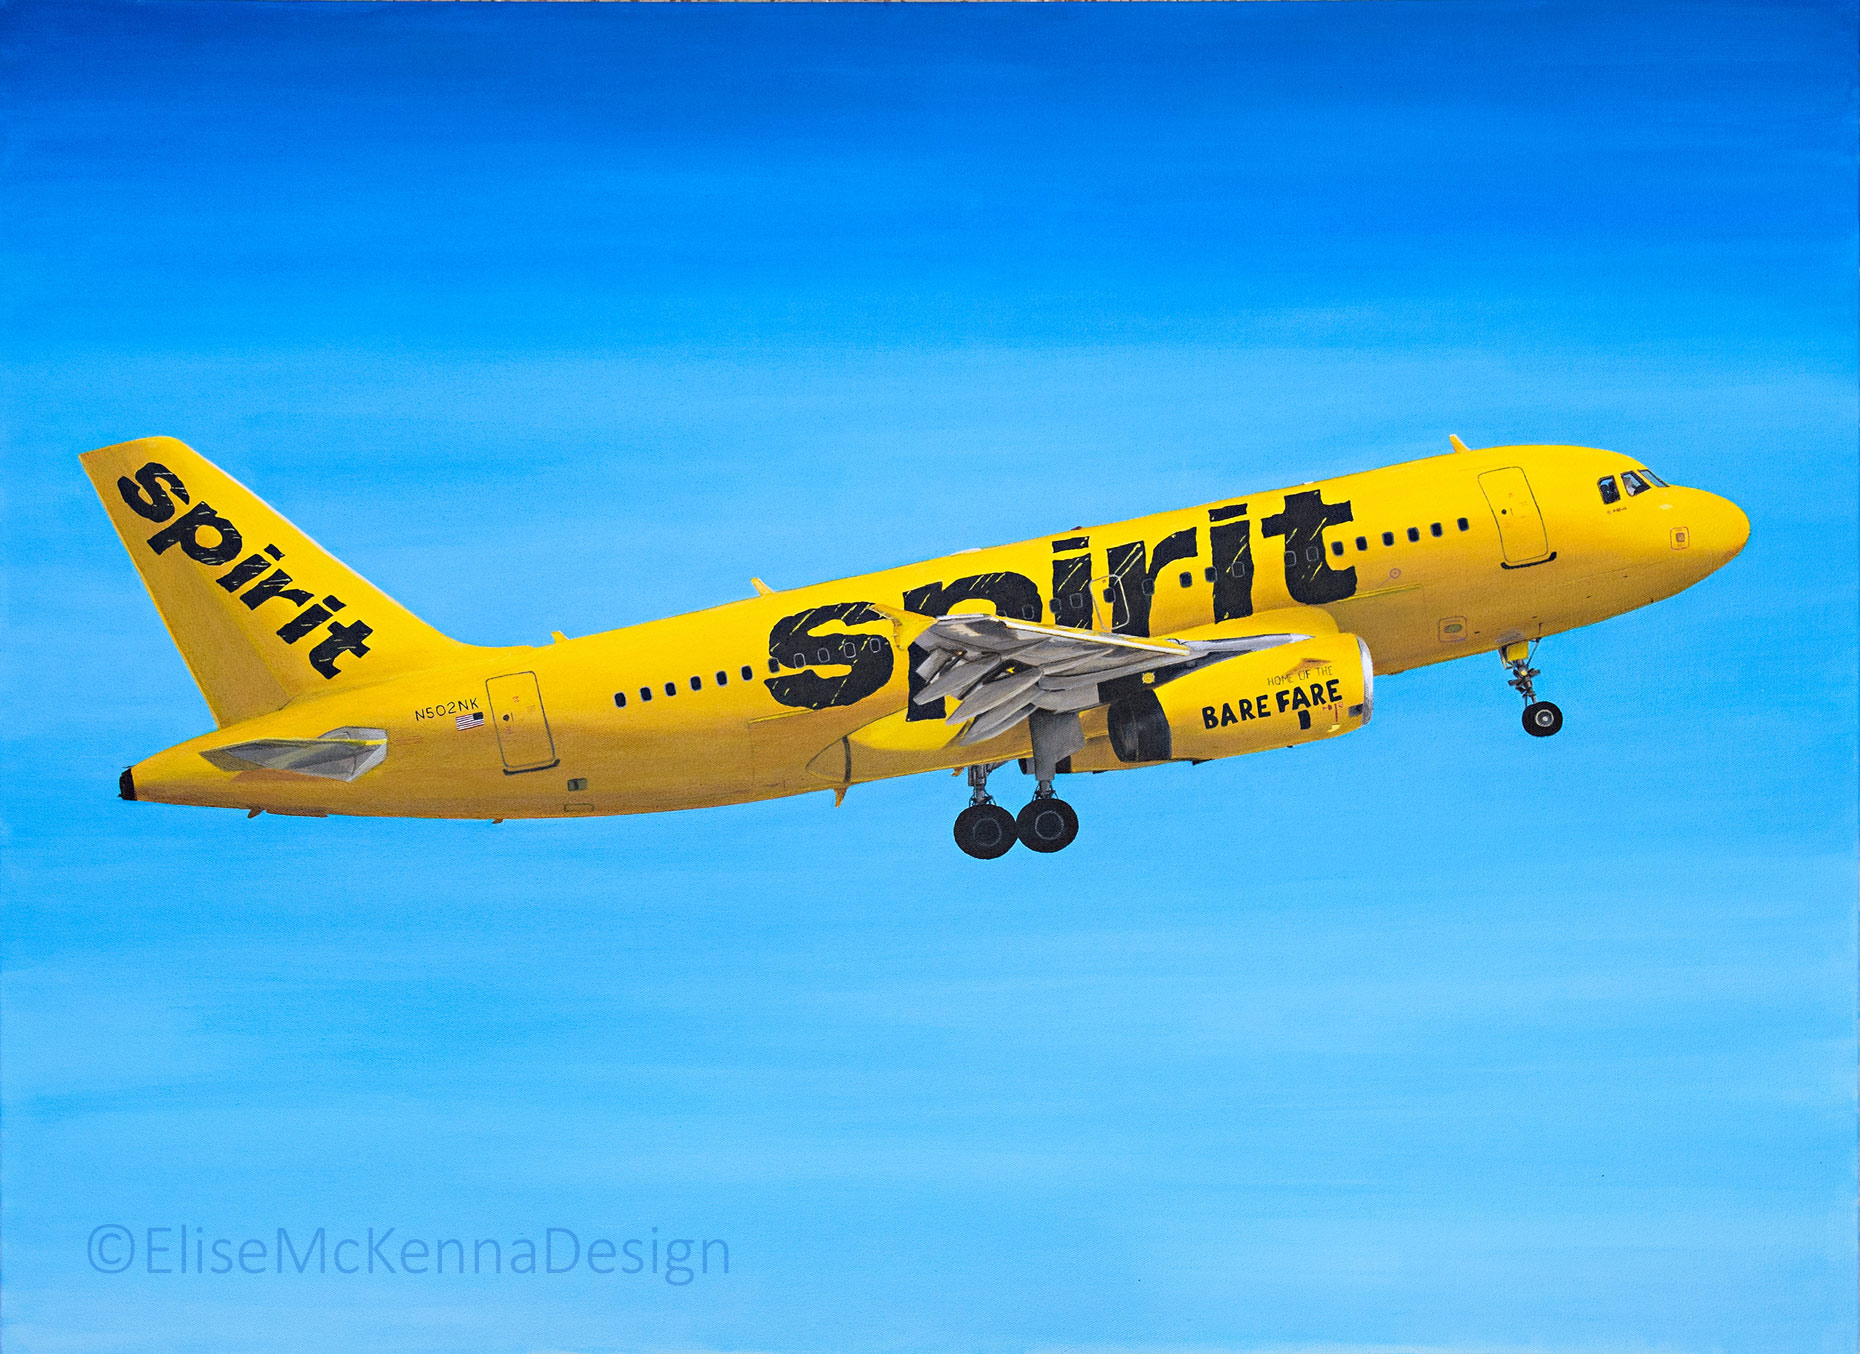 """Spirit Airlines Airbus A319; original: 20 x 30 x 1"""" (not for sale); prints available upon request"""